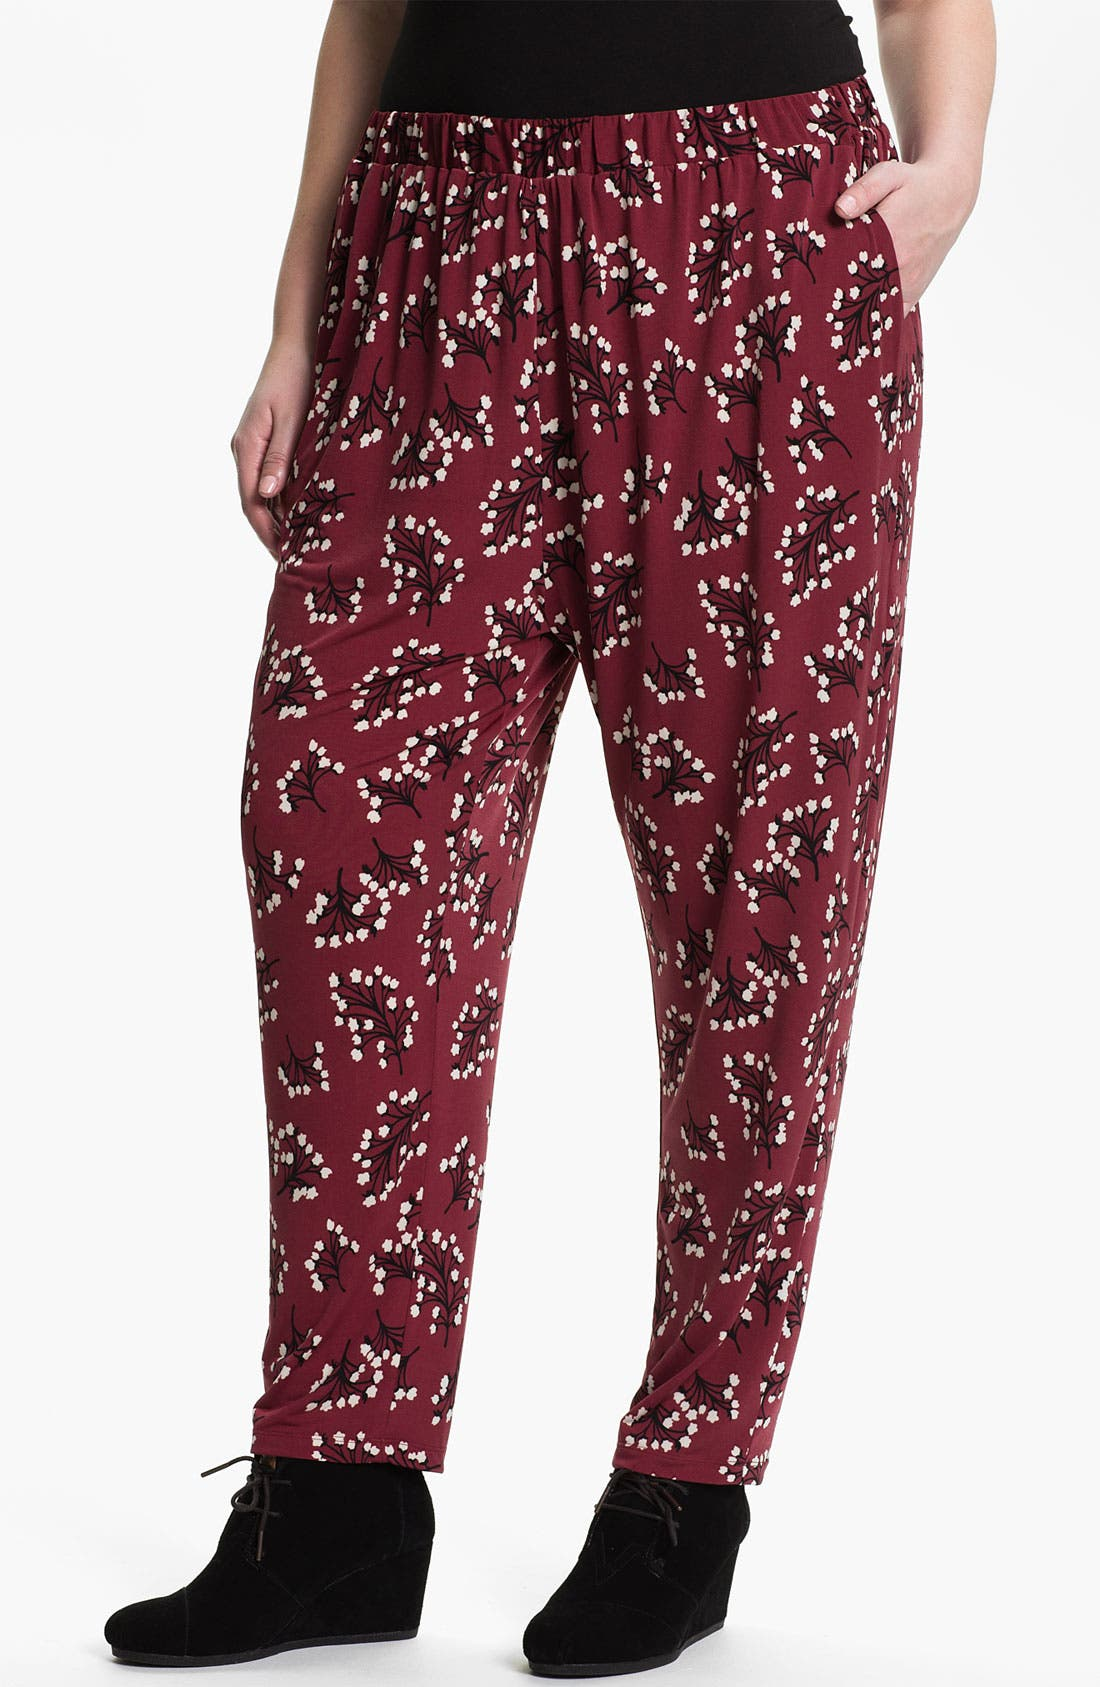 Alternate Image 1 Selected - Evans 'Mimosa' Pants (Plus Size)